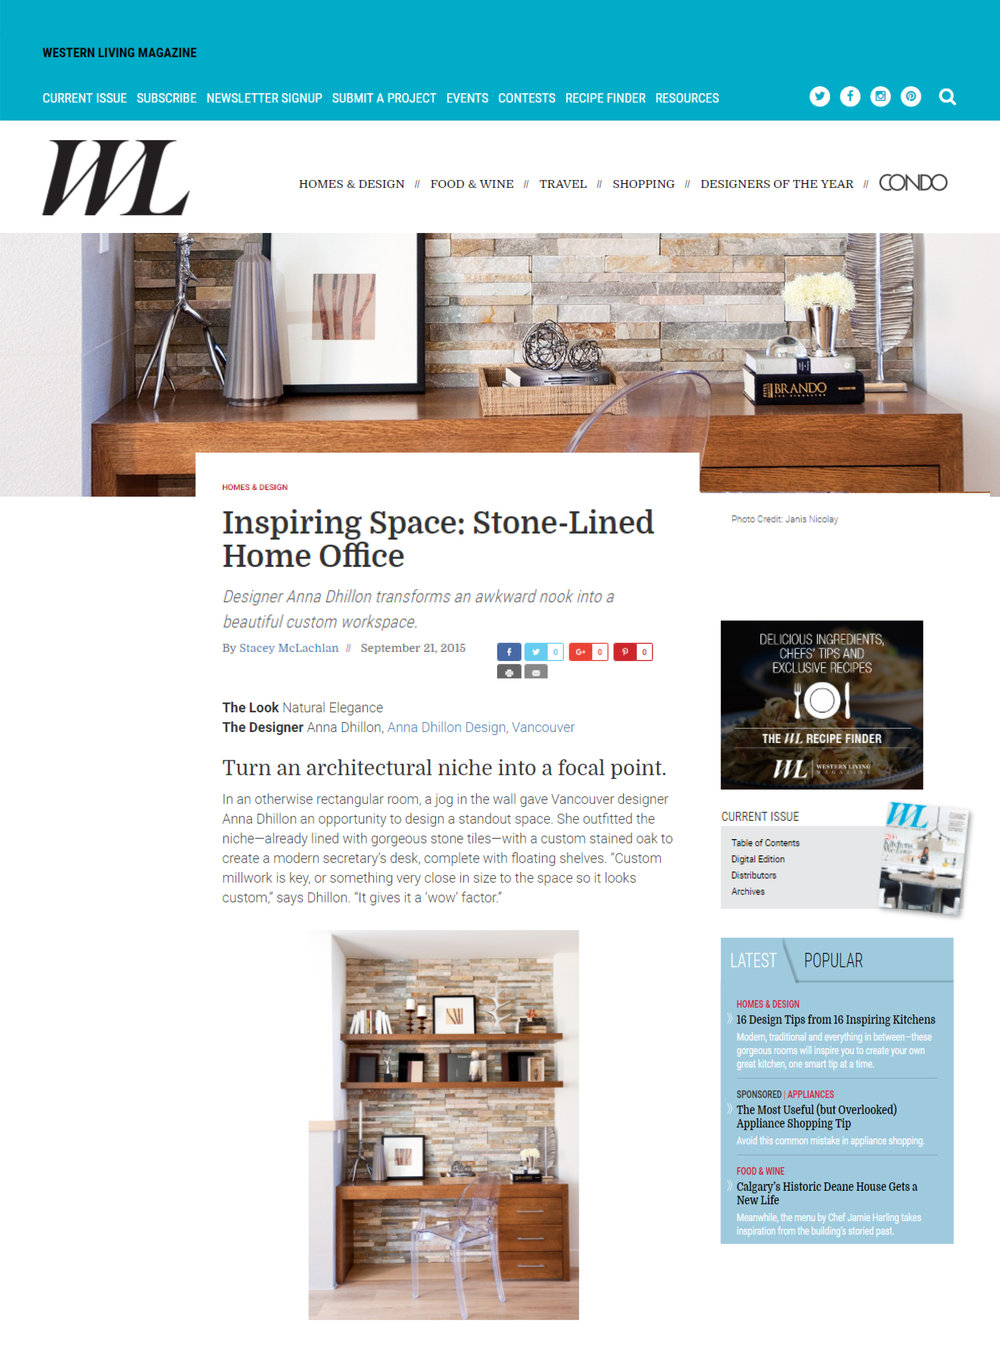 15_09-WLM-Inspiring Space Stone-Lined Home Office.jpg